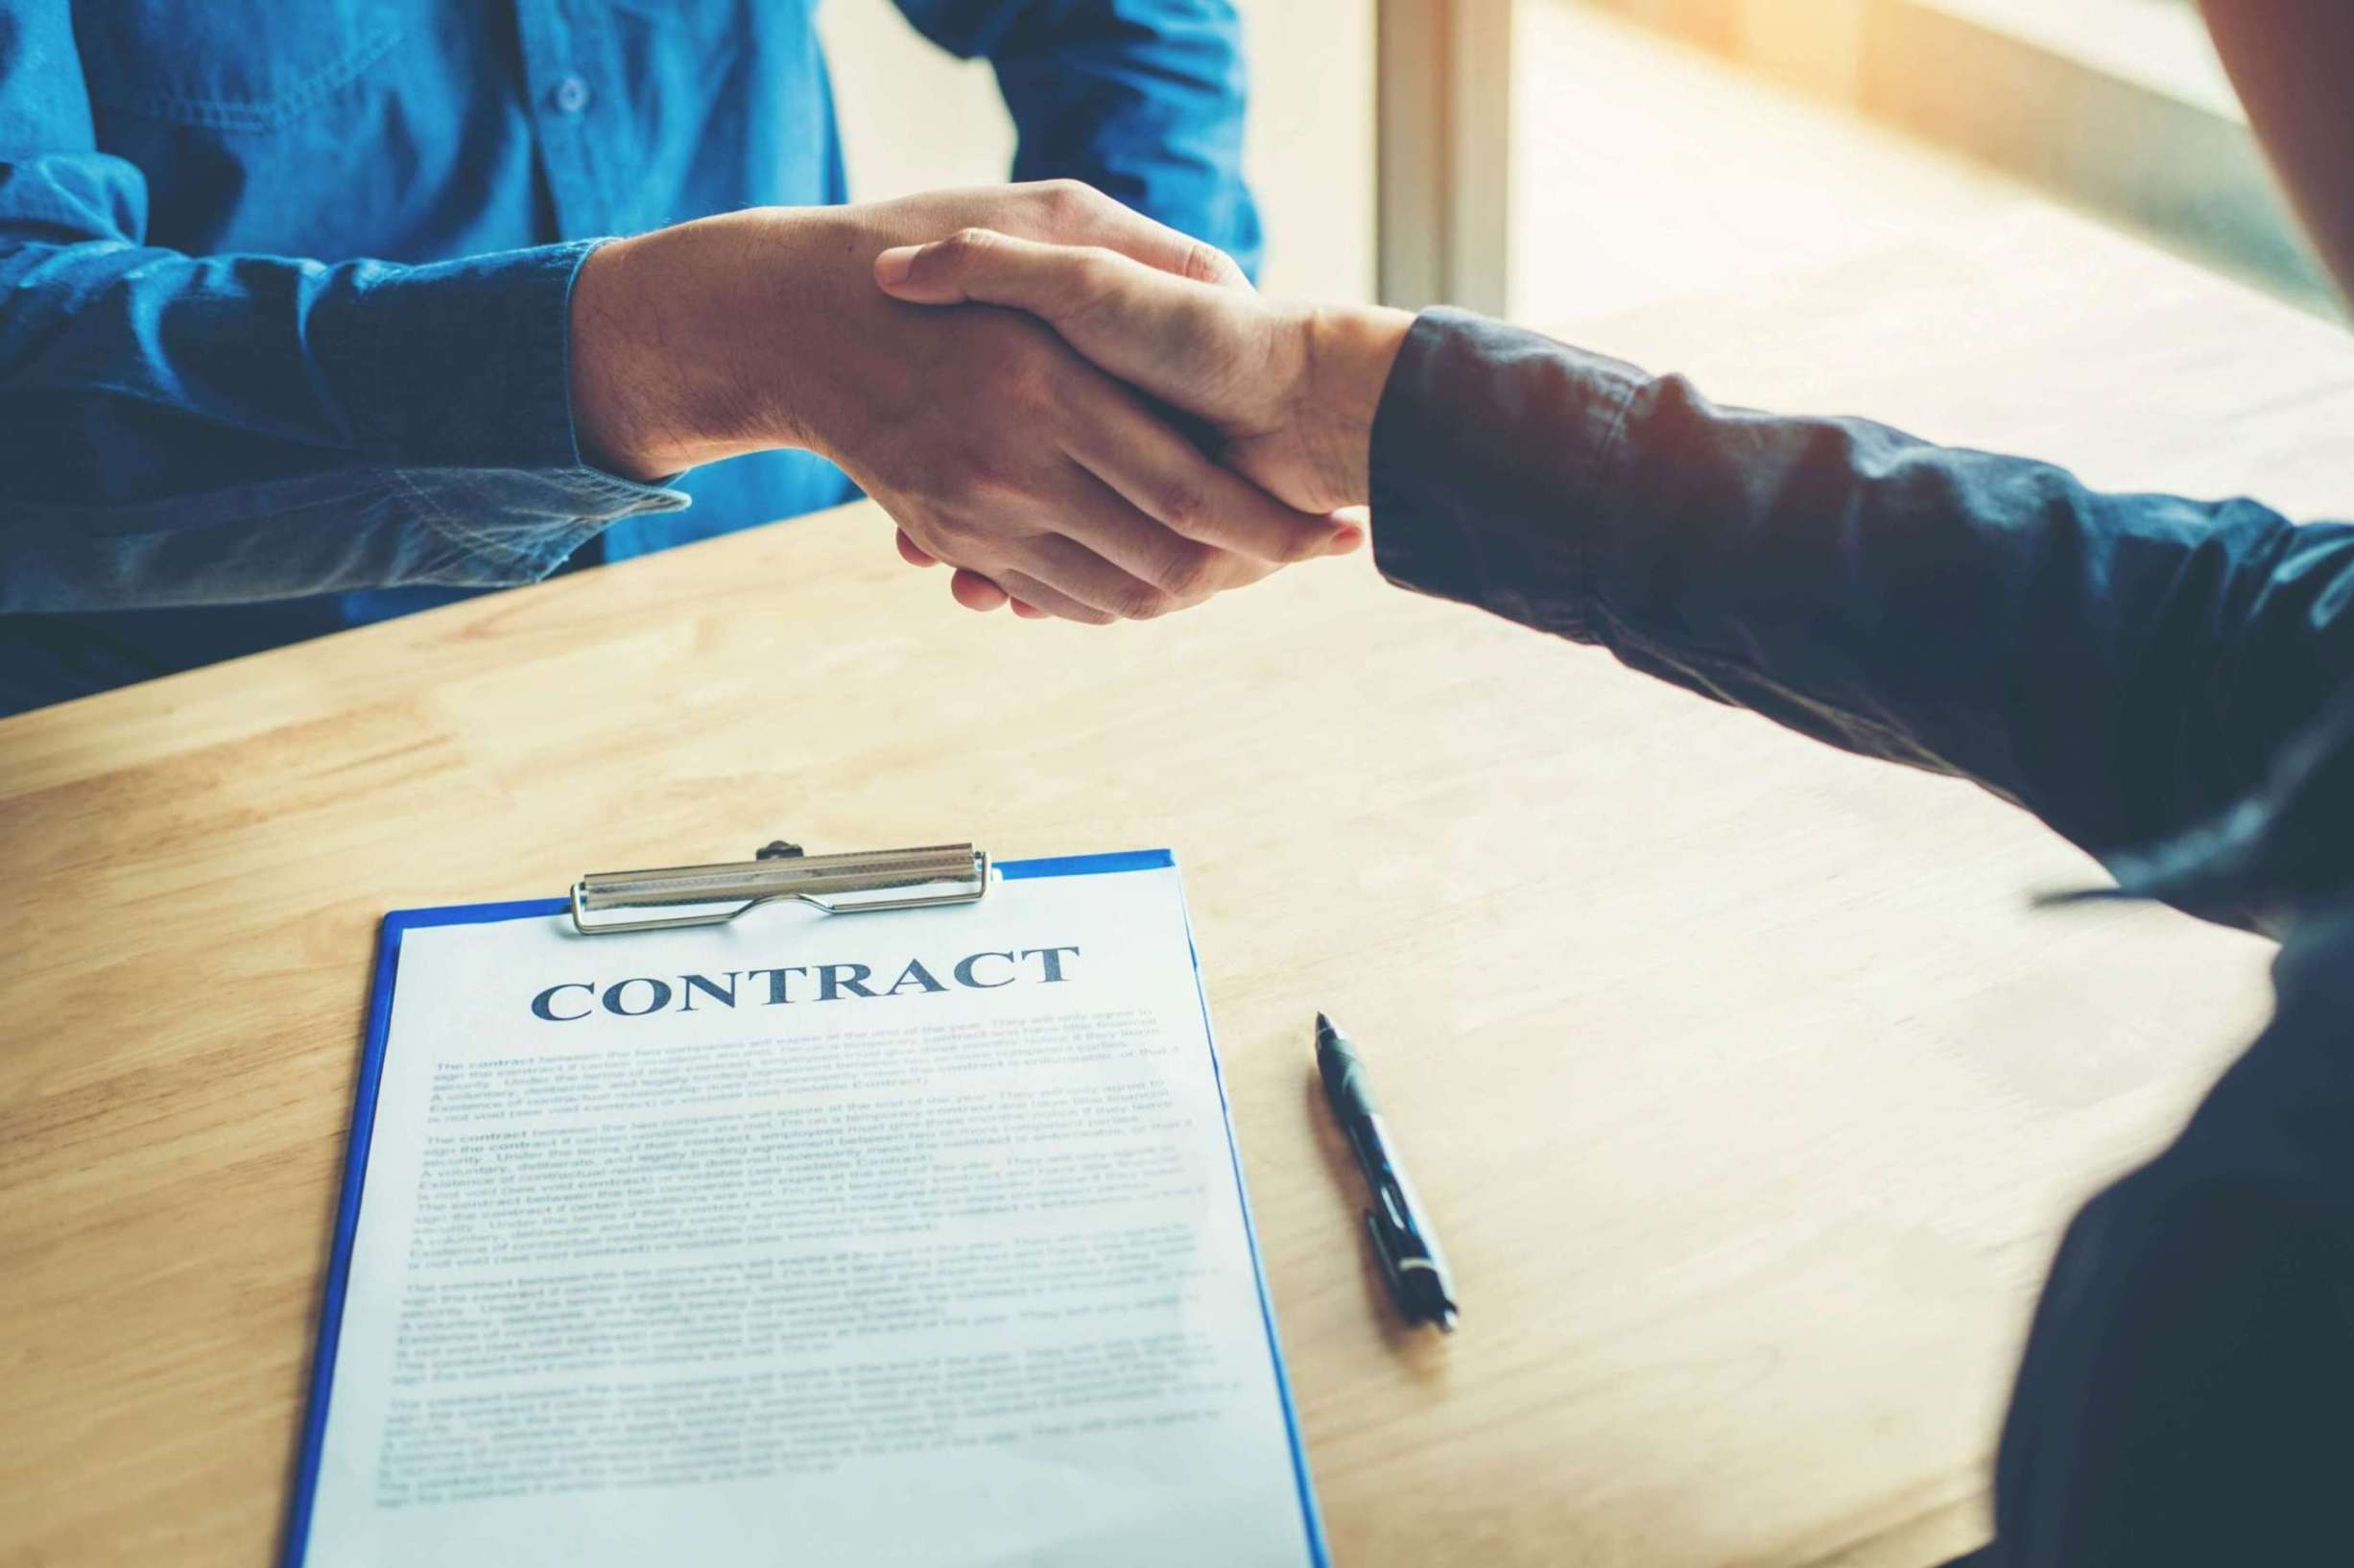 Franchise Contracts: 3 Essential Things You Need to Know